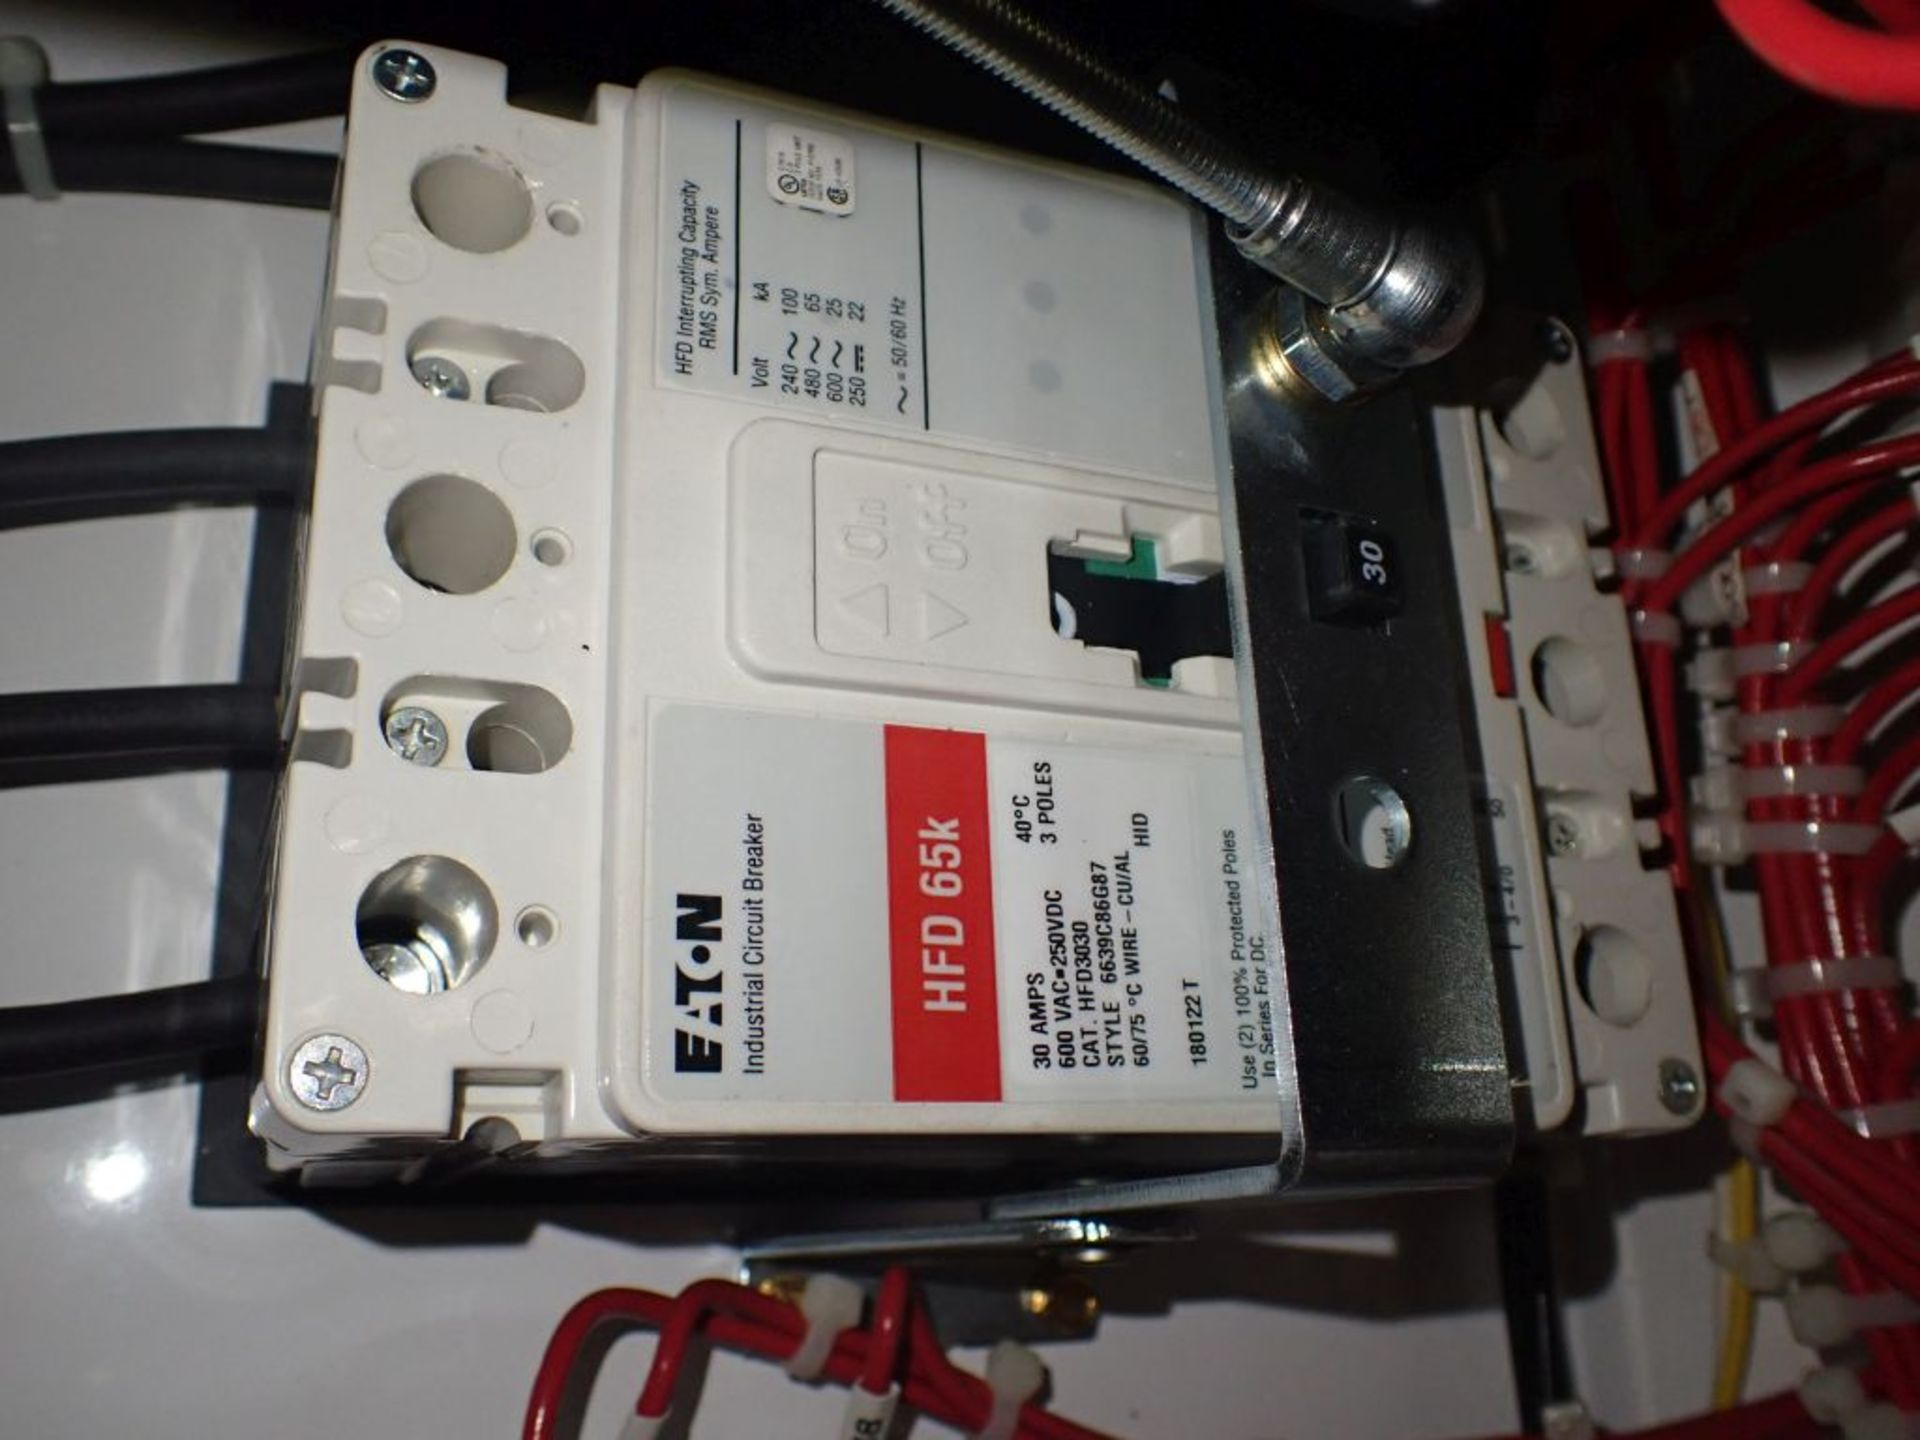 Eaton Freedom 2100 Series Motor Control Center | (2) F208-30A; (1) F208-40A; (1) FDRB-50A; (2) - Image 28 of 37